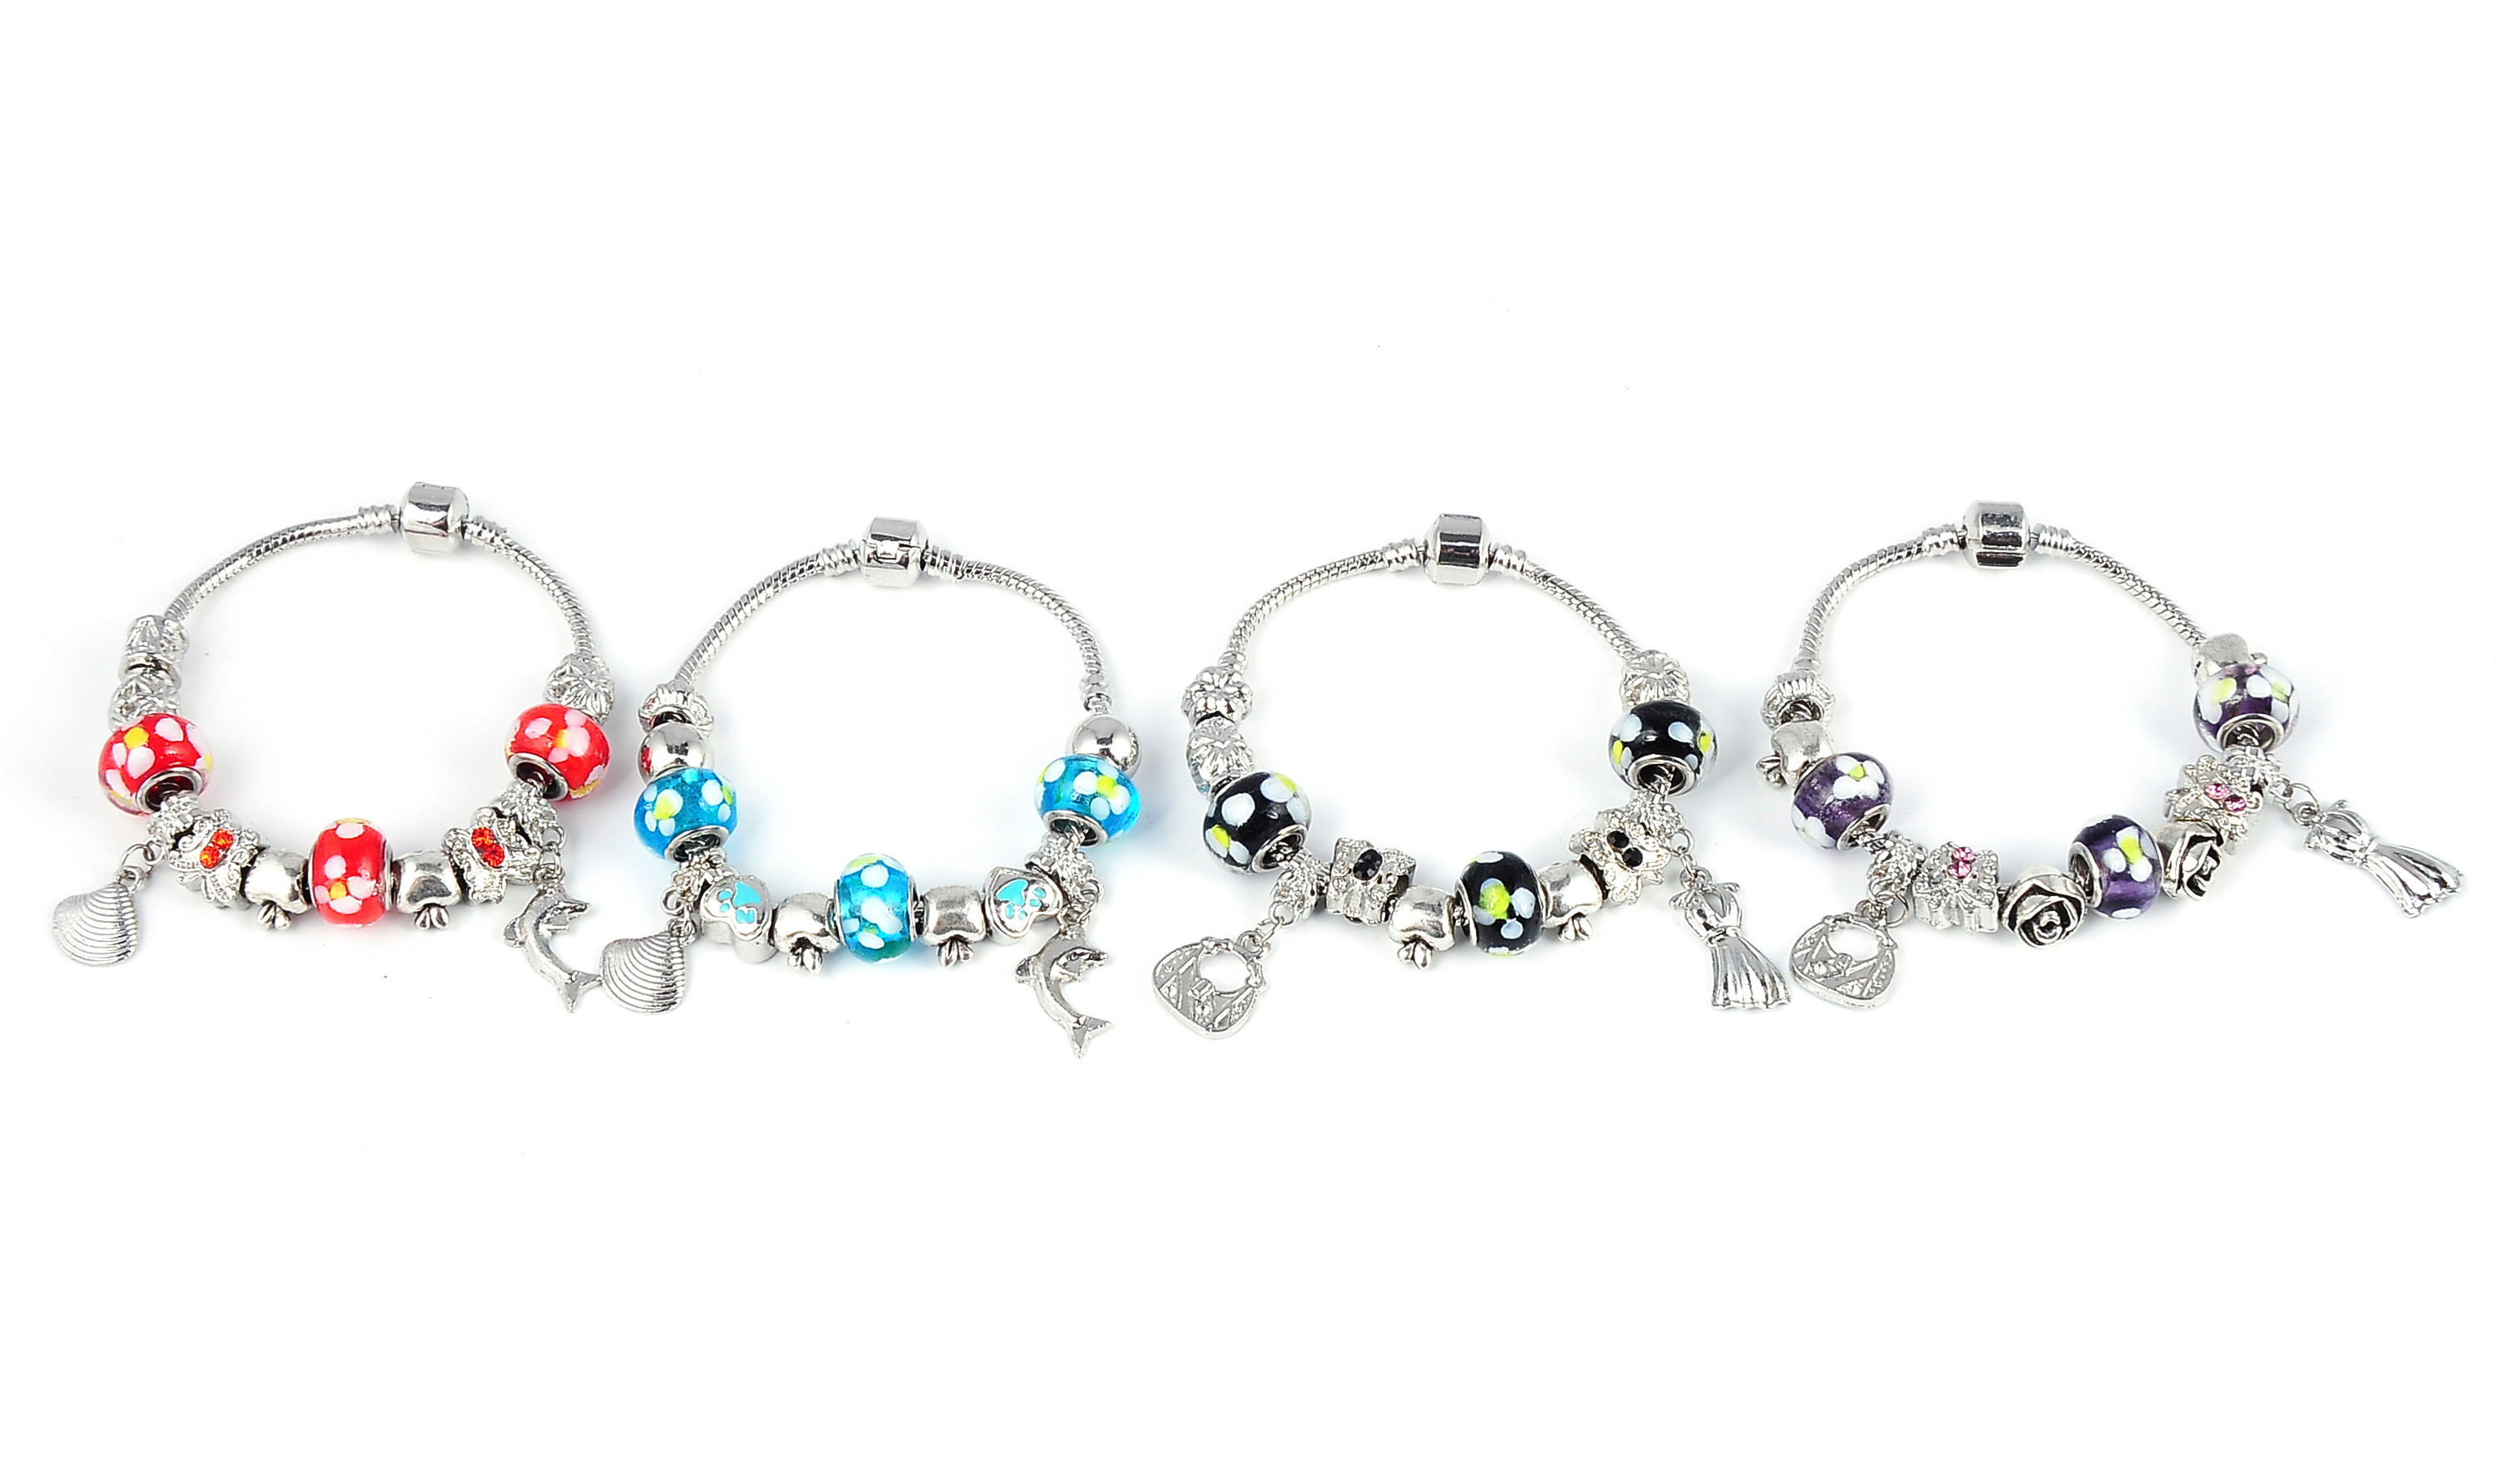 4 pieces of Fashionable Crystal Bead Charm Bracelets - red/black/purple/blue - f-br6-4